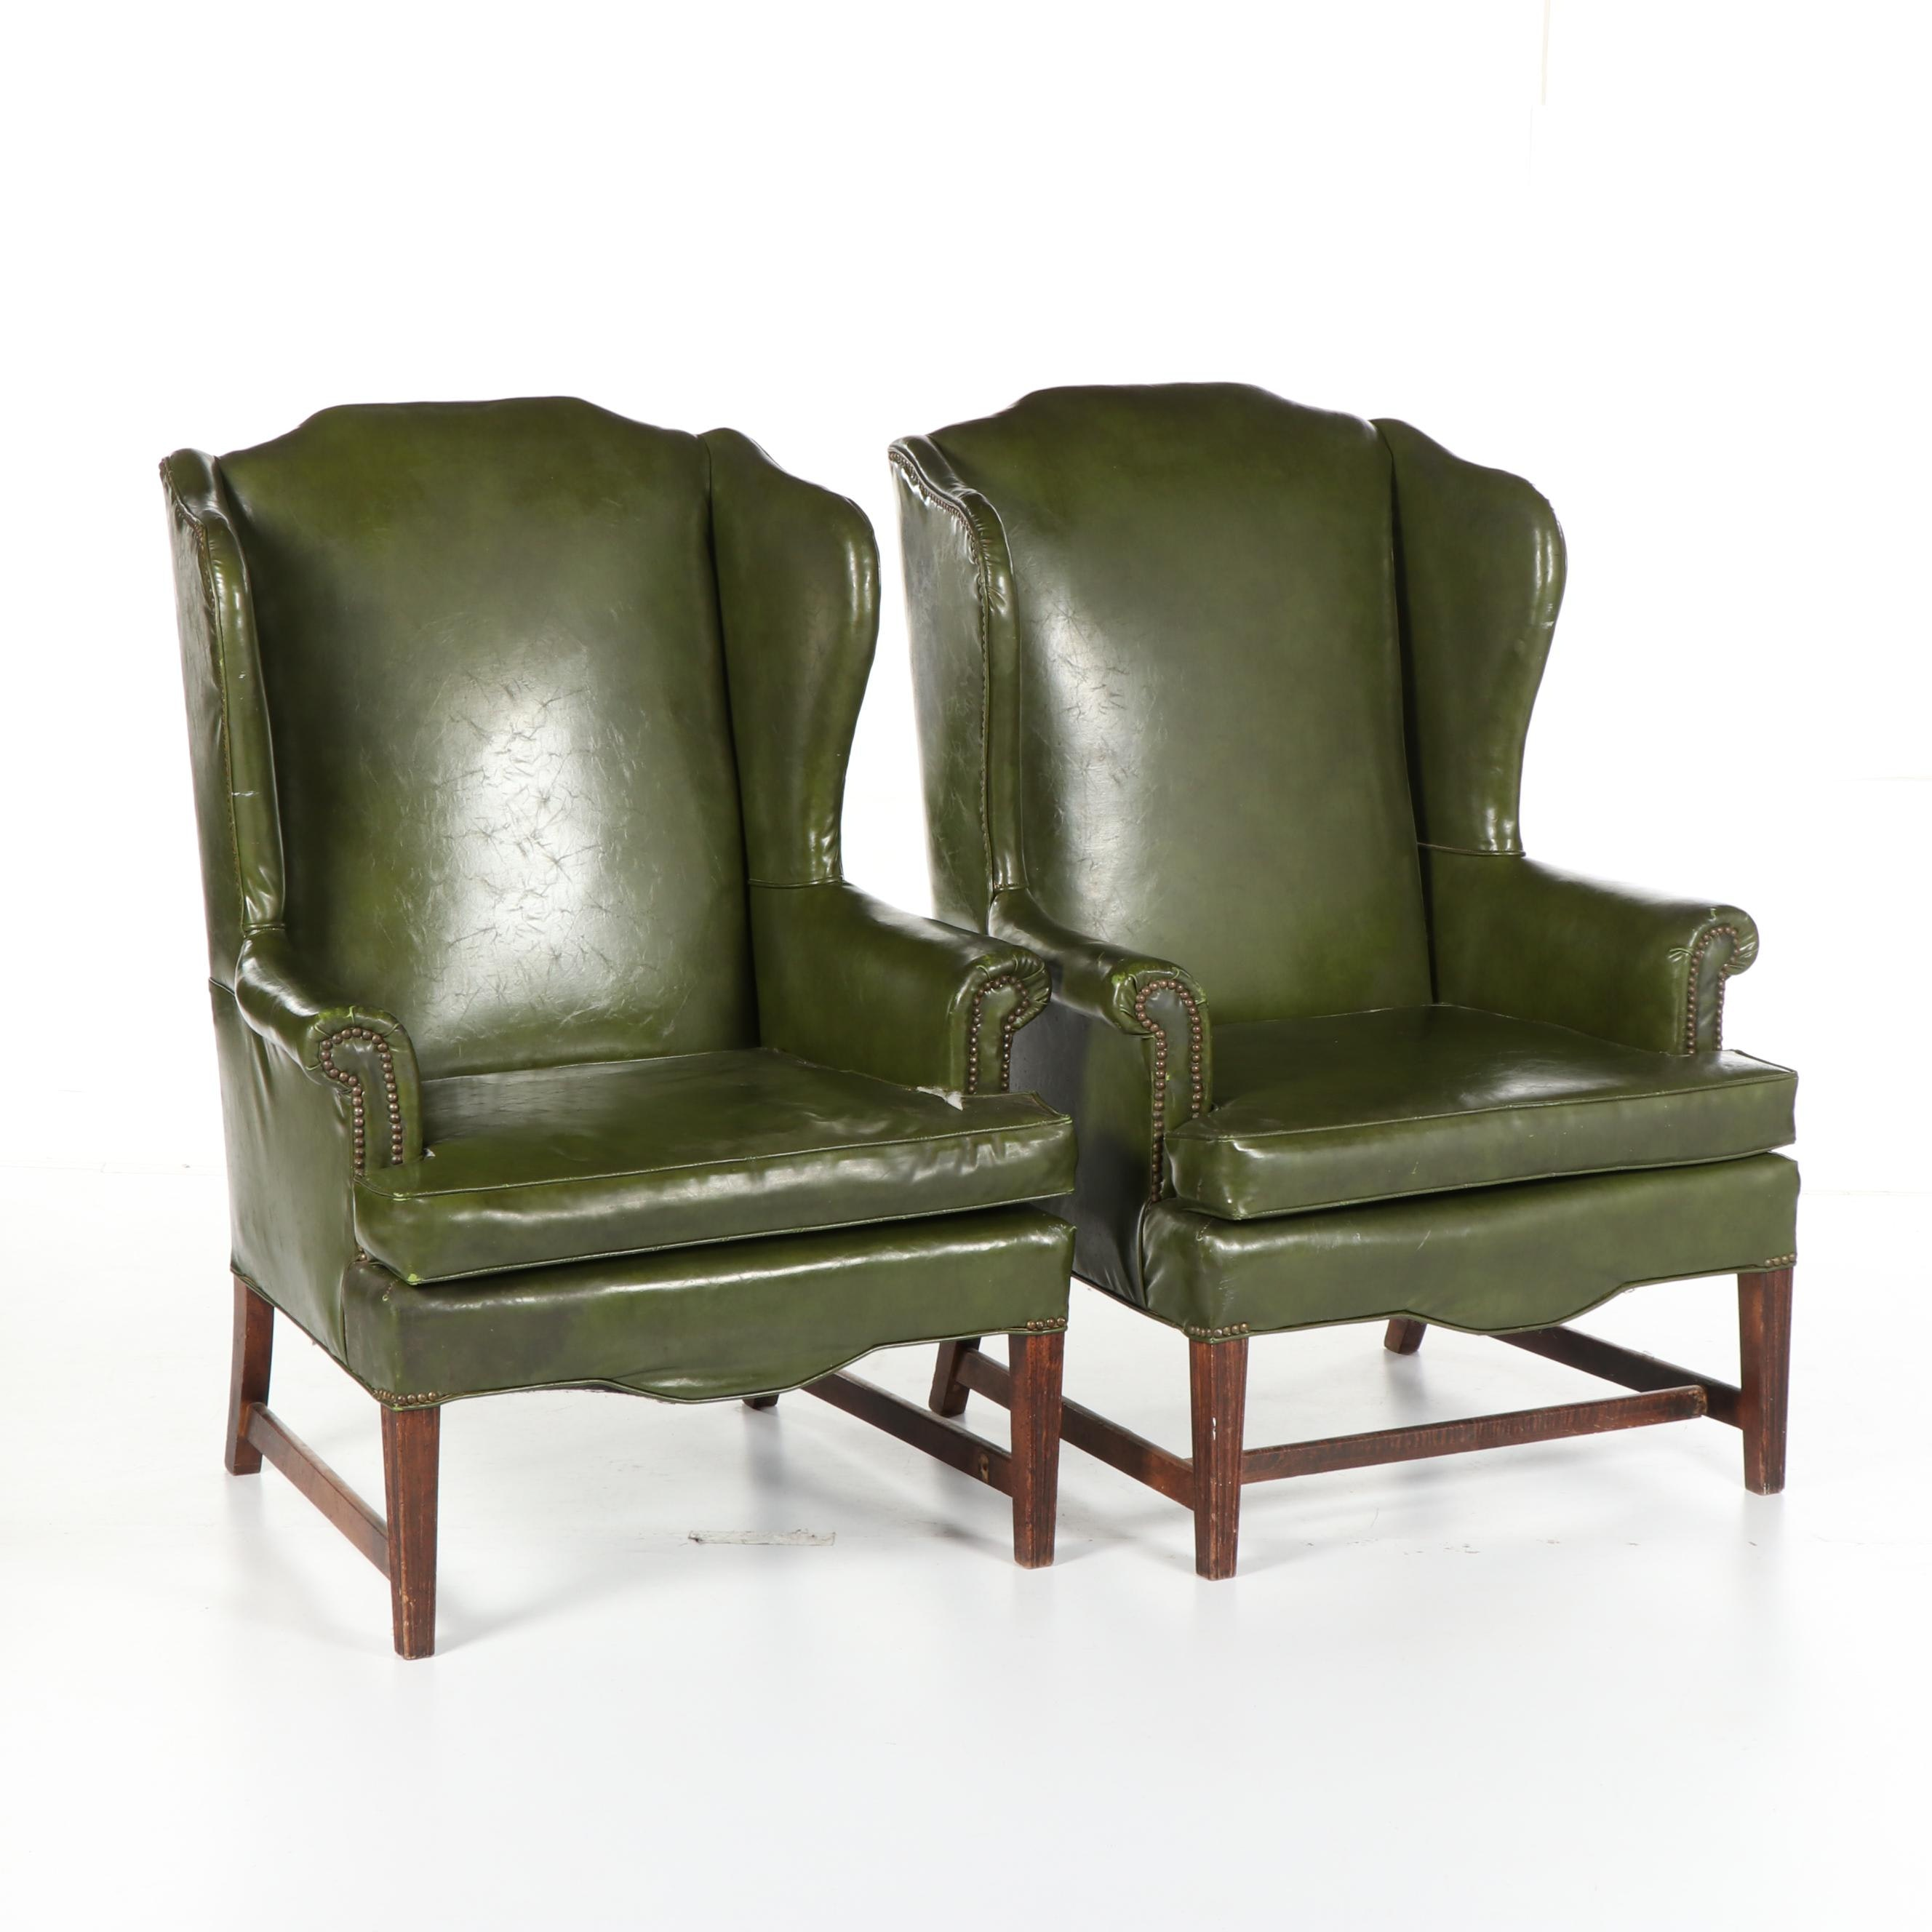 Federal Style Green Vinyl Upholstered Wingback Armchairs, Mid-20th Century